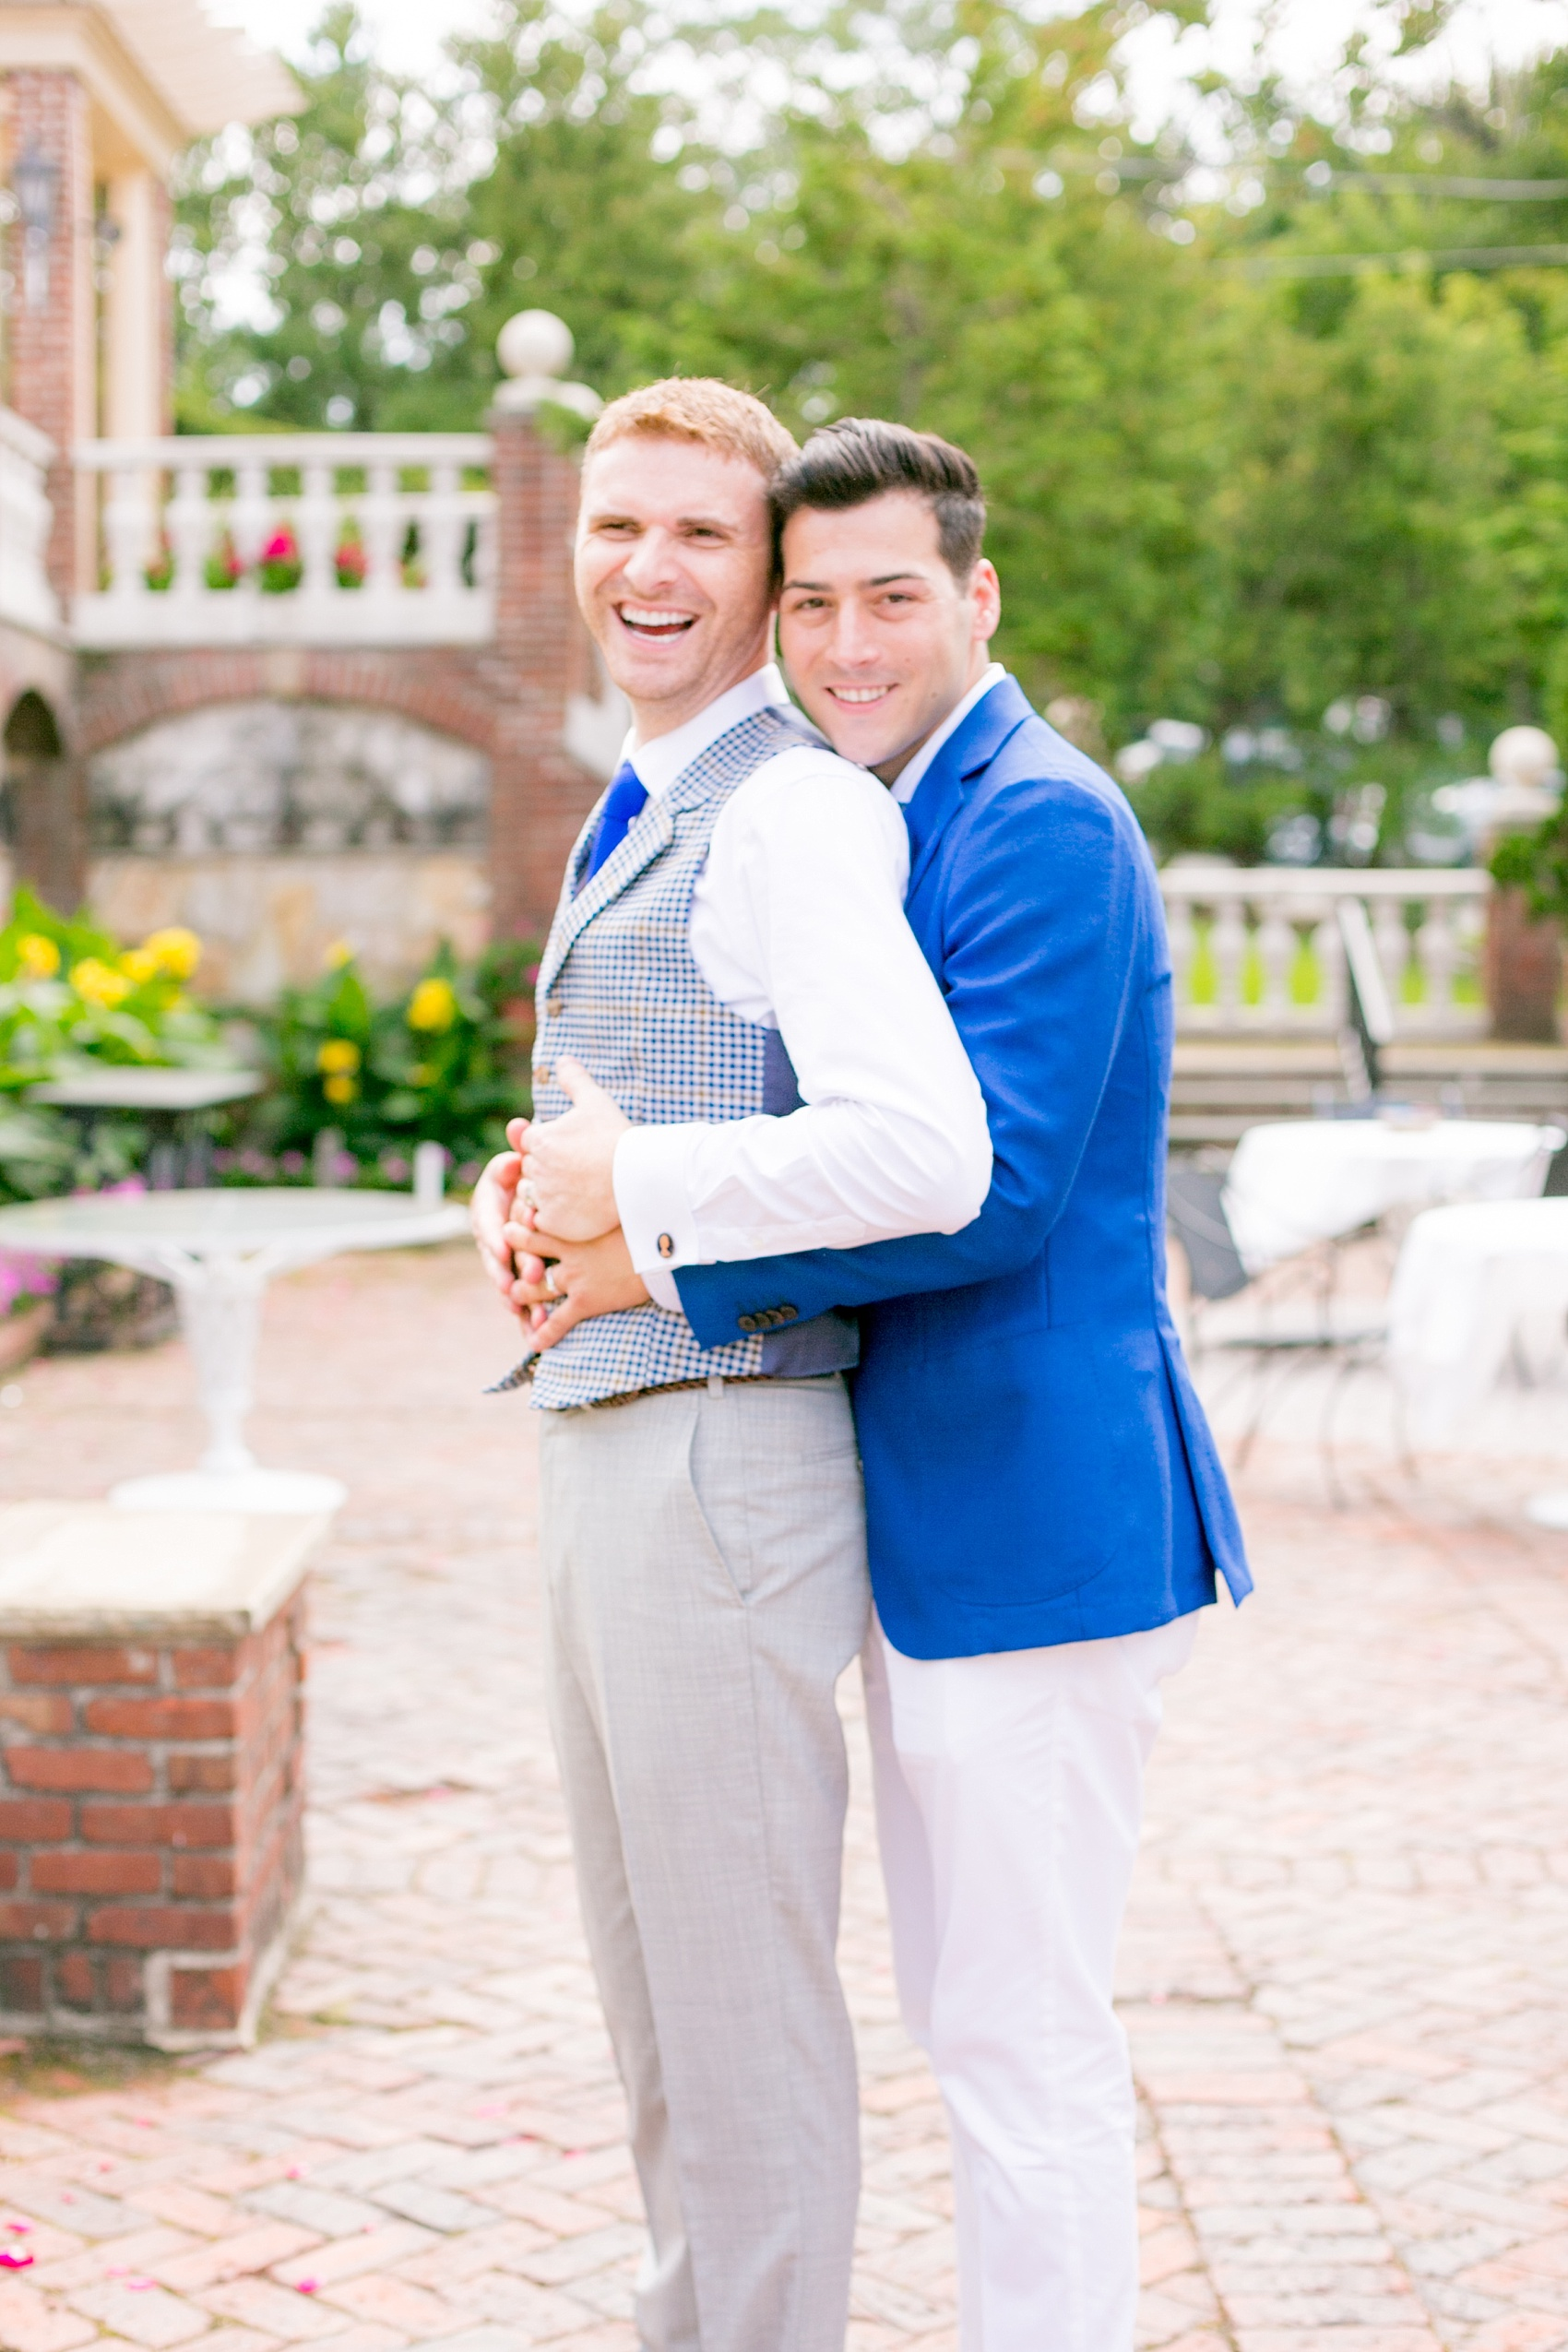 Mikkel Paige Photography photos of a summer, daytime gay wedding. A romantic, playful image of the grooms hugging in a vest and blue suit in front of picturesque landscaping at The Manor, in West Orange New Jersey.